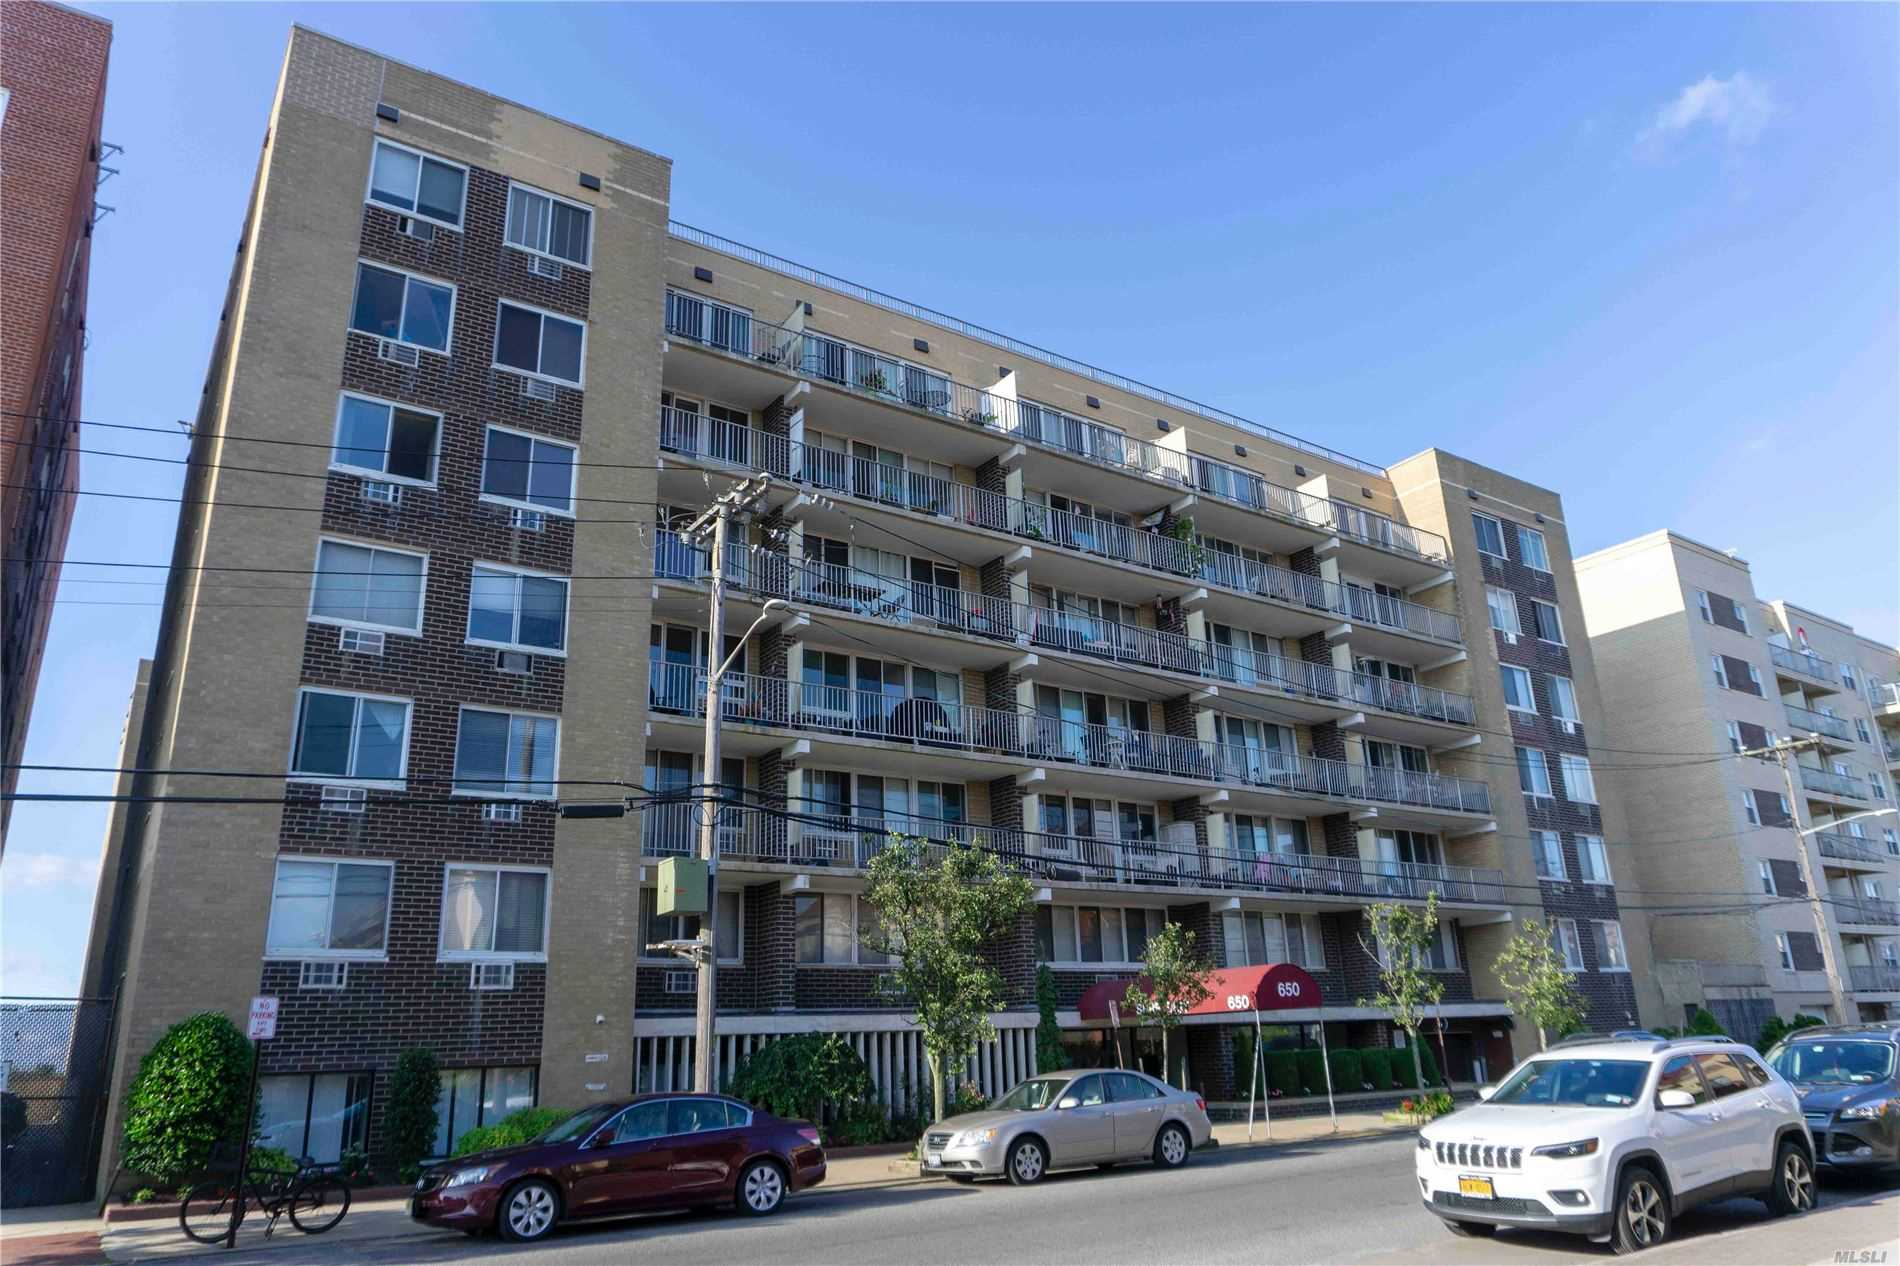 Property for sale at 650 Shore Road # 1T, Long Beach NY 11561, Long Beach,  New York 11561